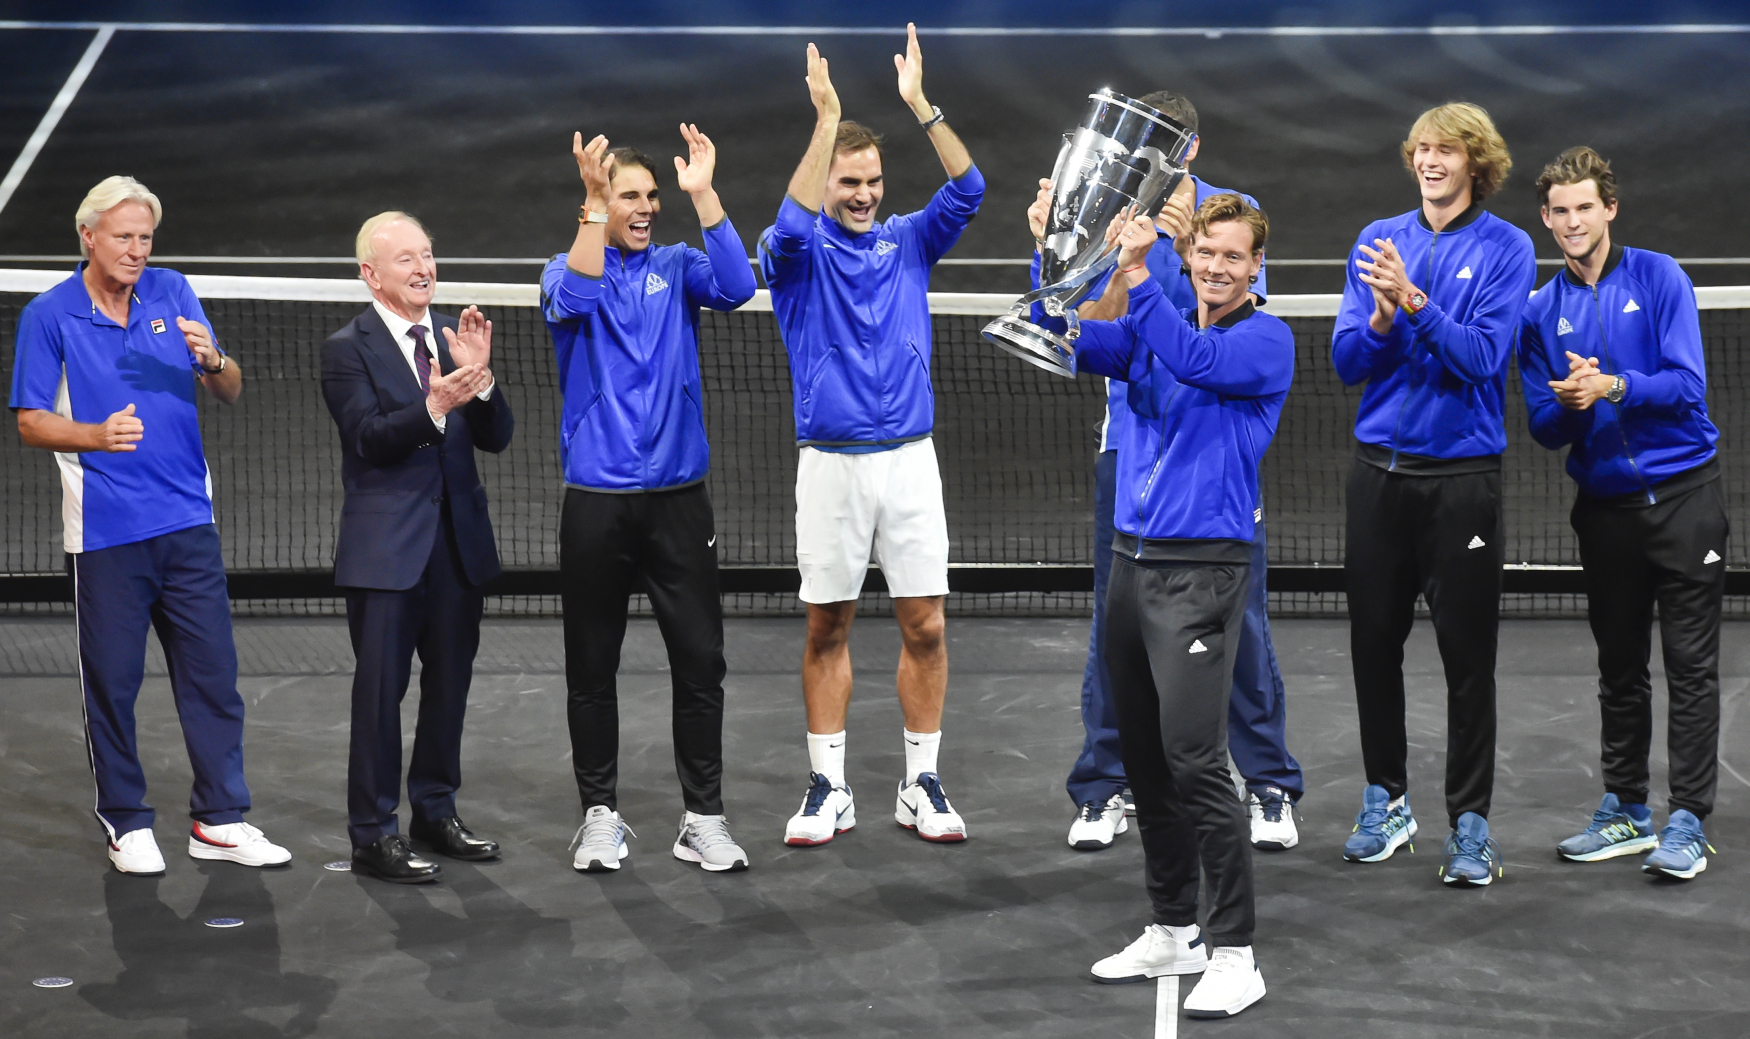 Team Europe lifts first Laver Cup in Prague | Radio Prague